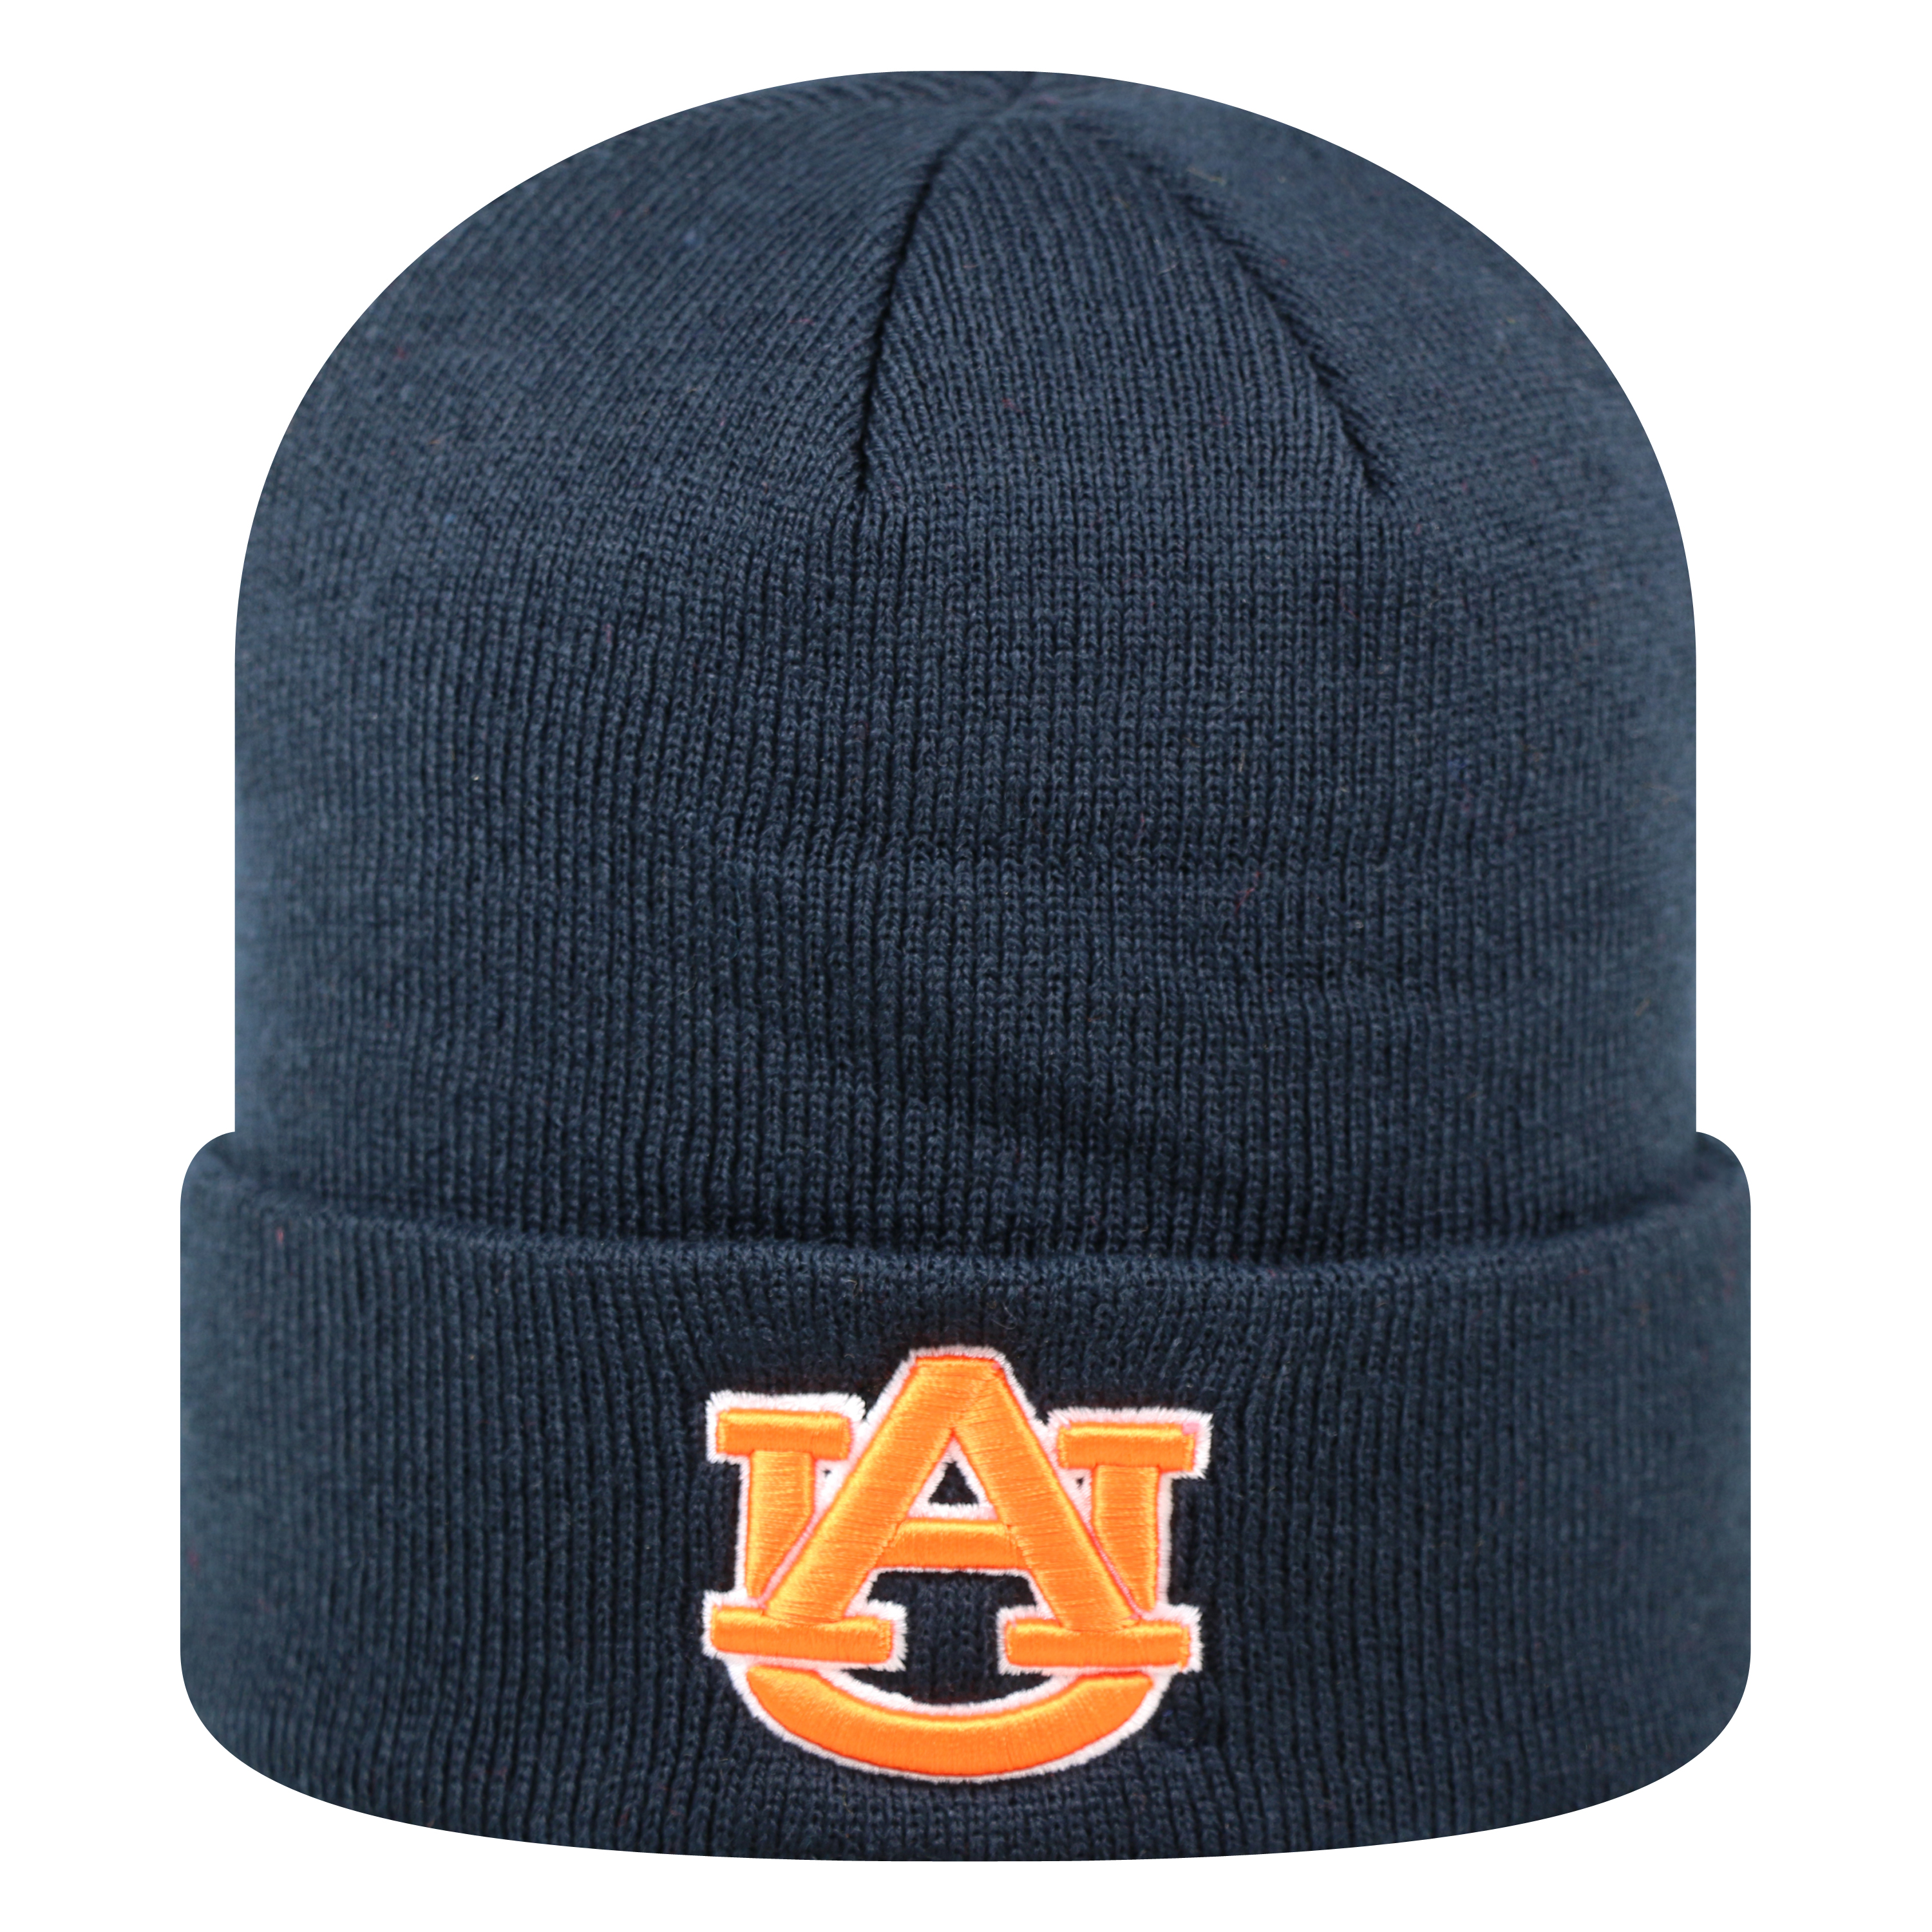 Auburn Tigers Official NCAA Cuffed Knit Tow Beanie Stocking Stretch Sock Hat Cap by Top of the World 933399